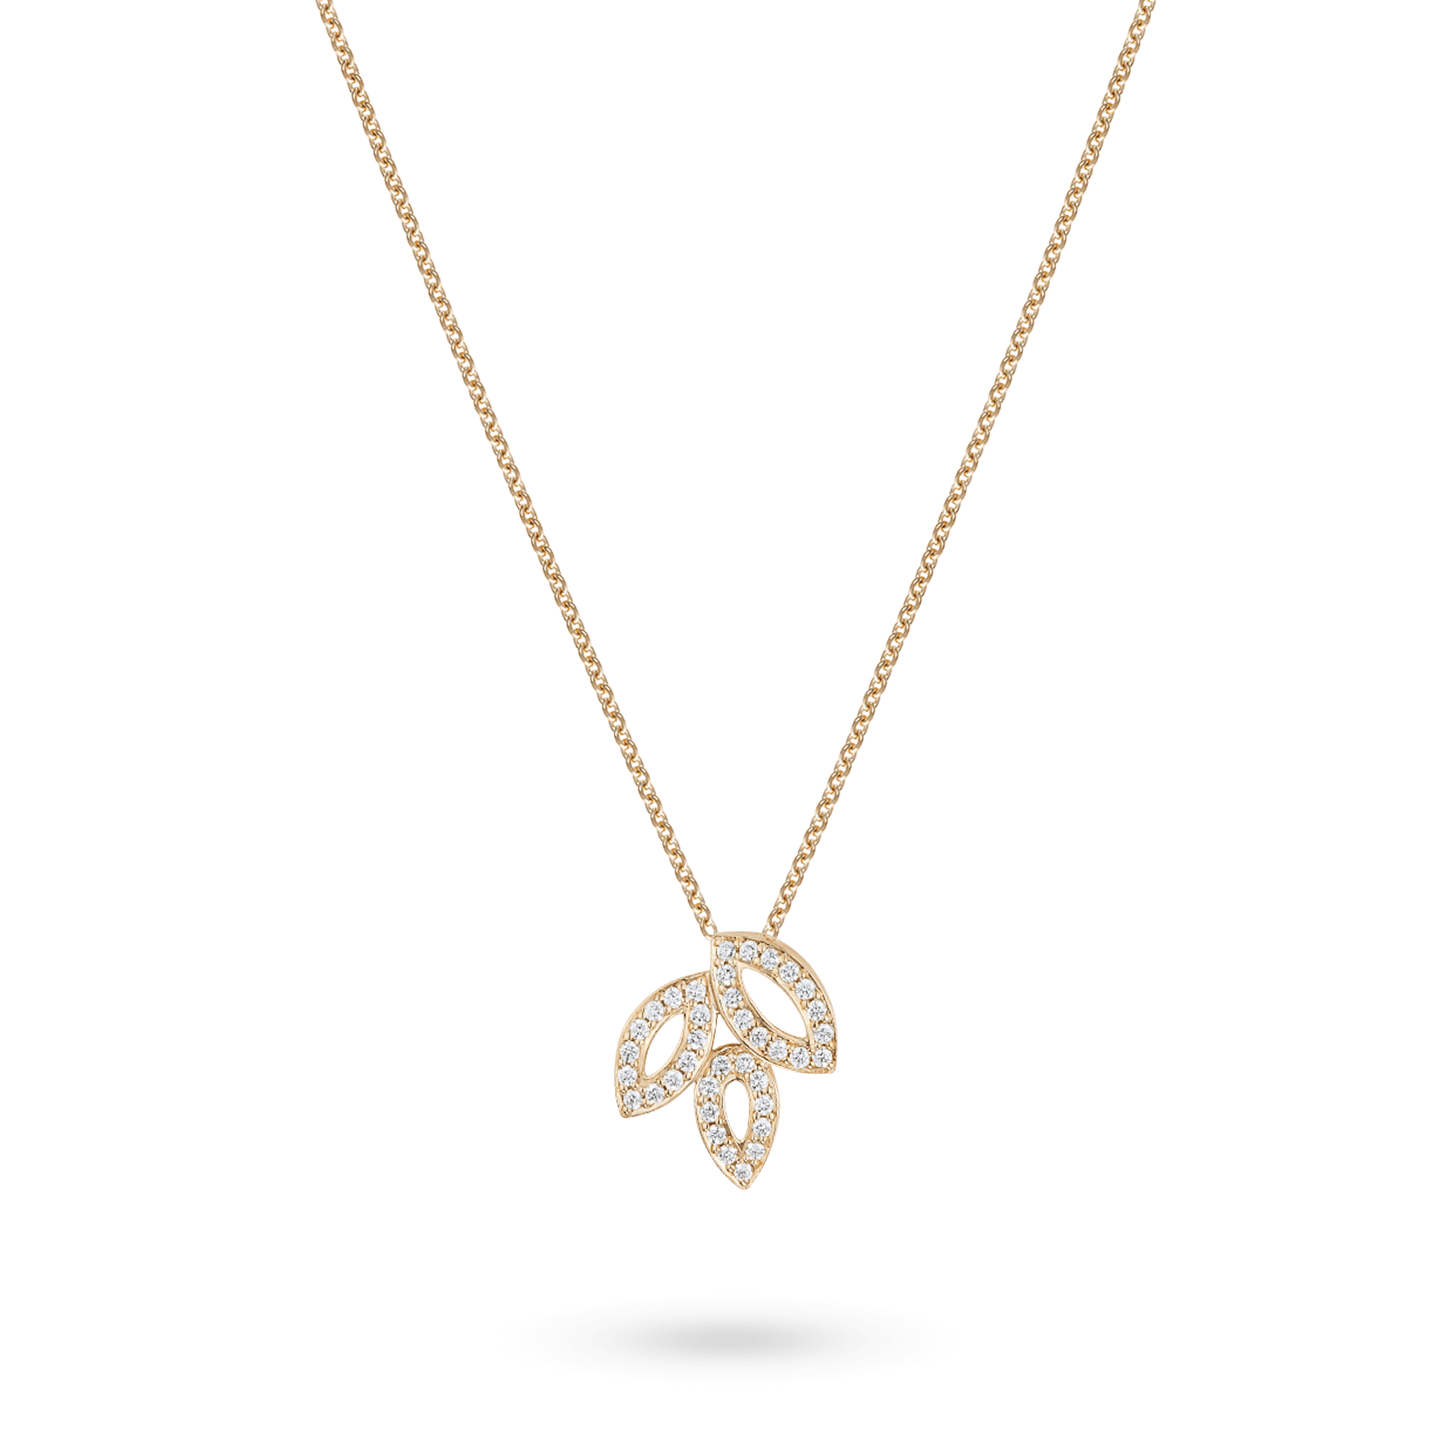 Lily Cluster Small Diamond Pendant in Yellow Gold, Product Image 2